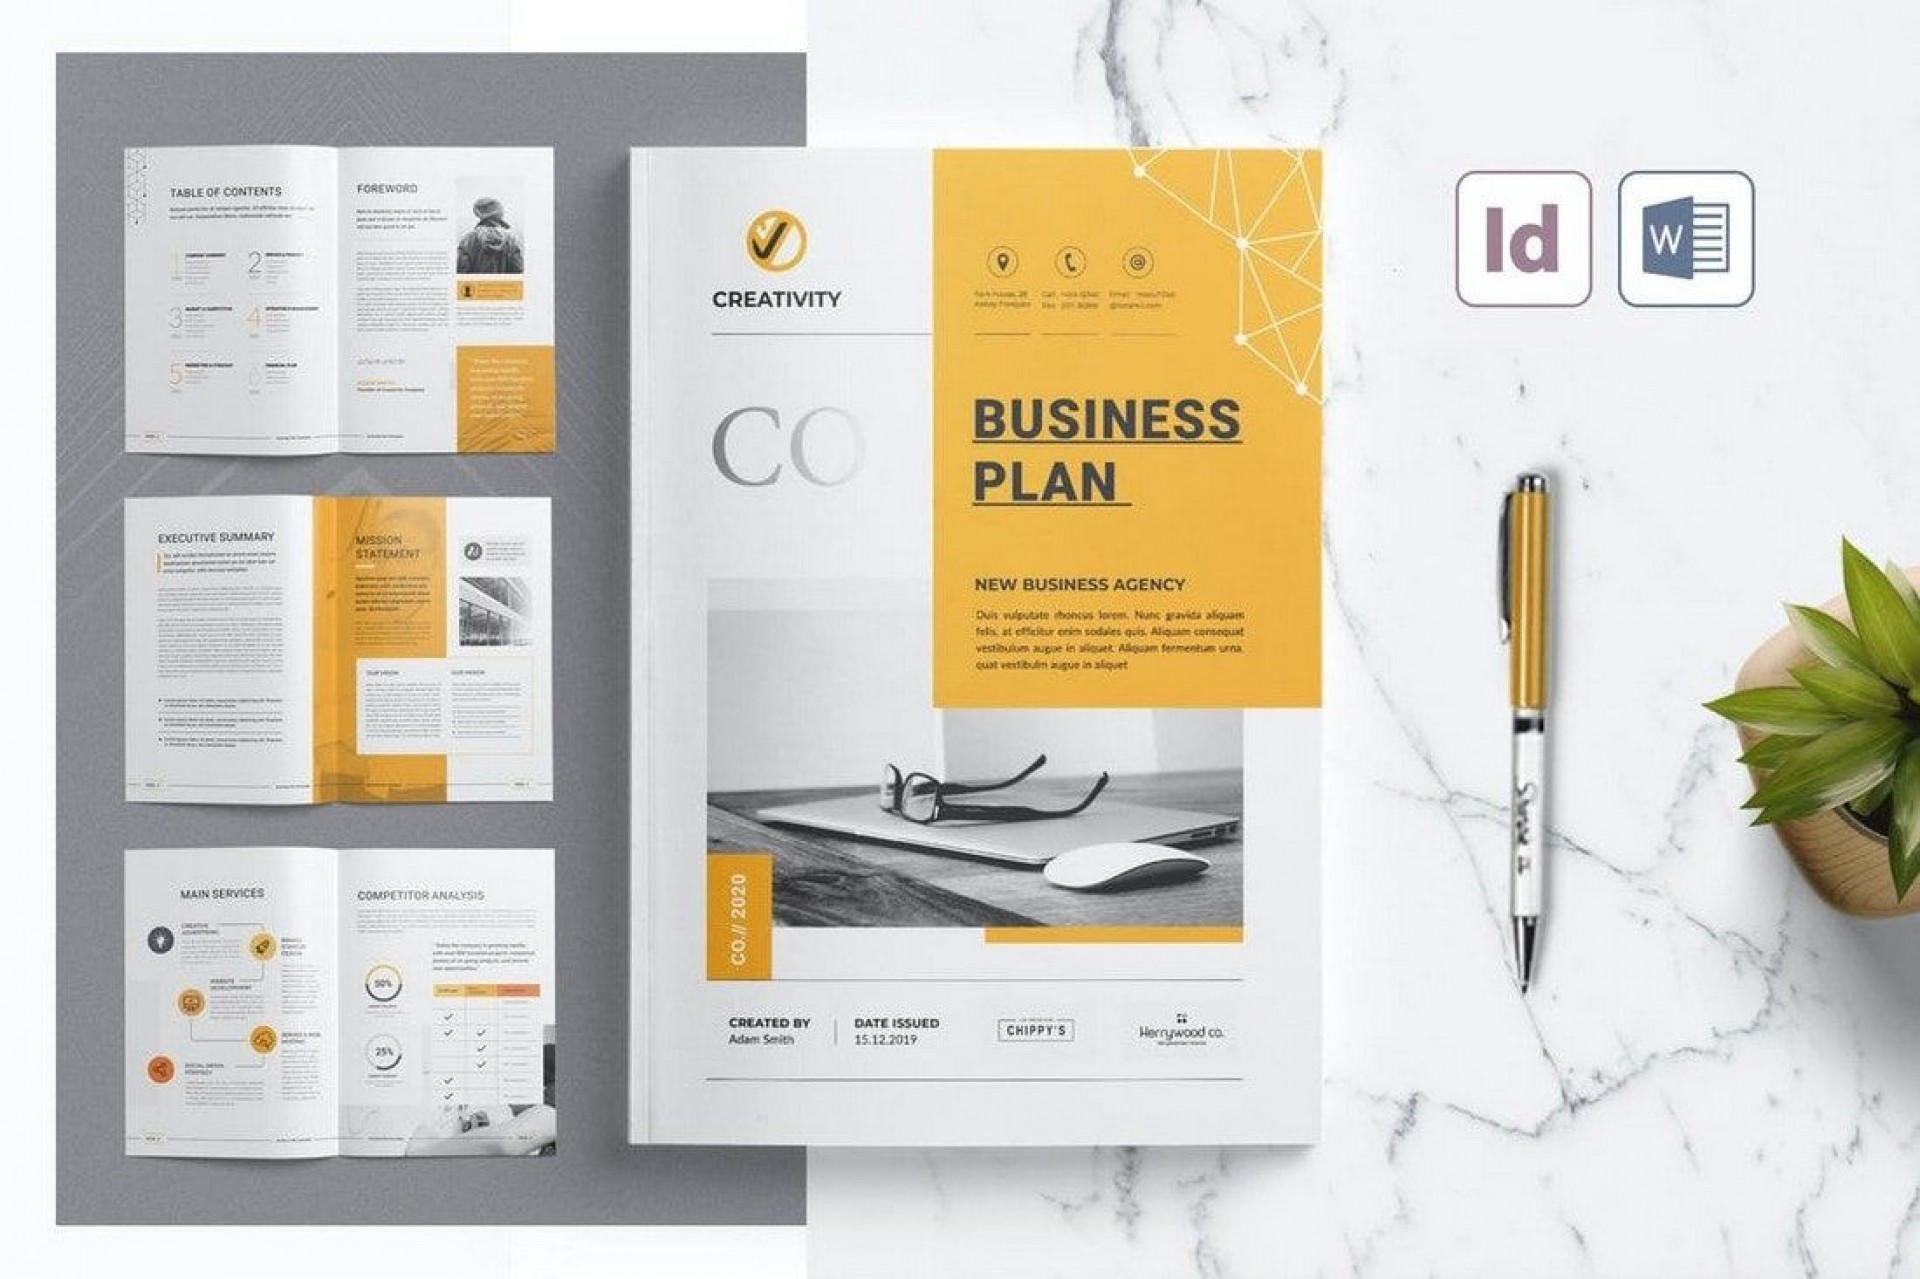 002 Simple Brochure Template For Wordpad High Resolution  Free1920